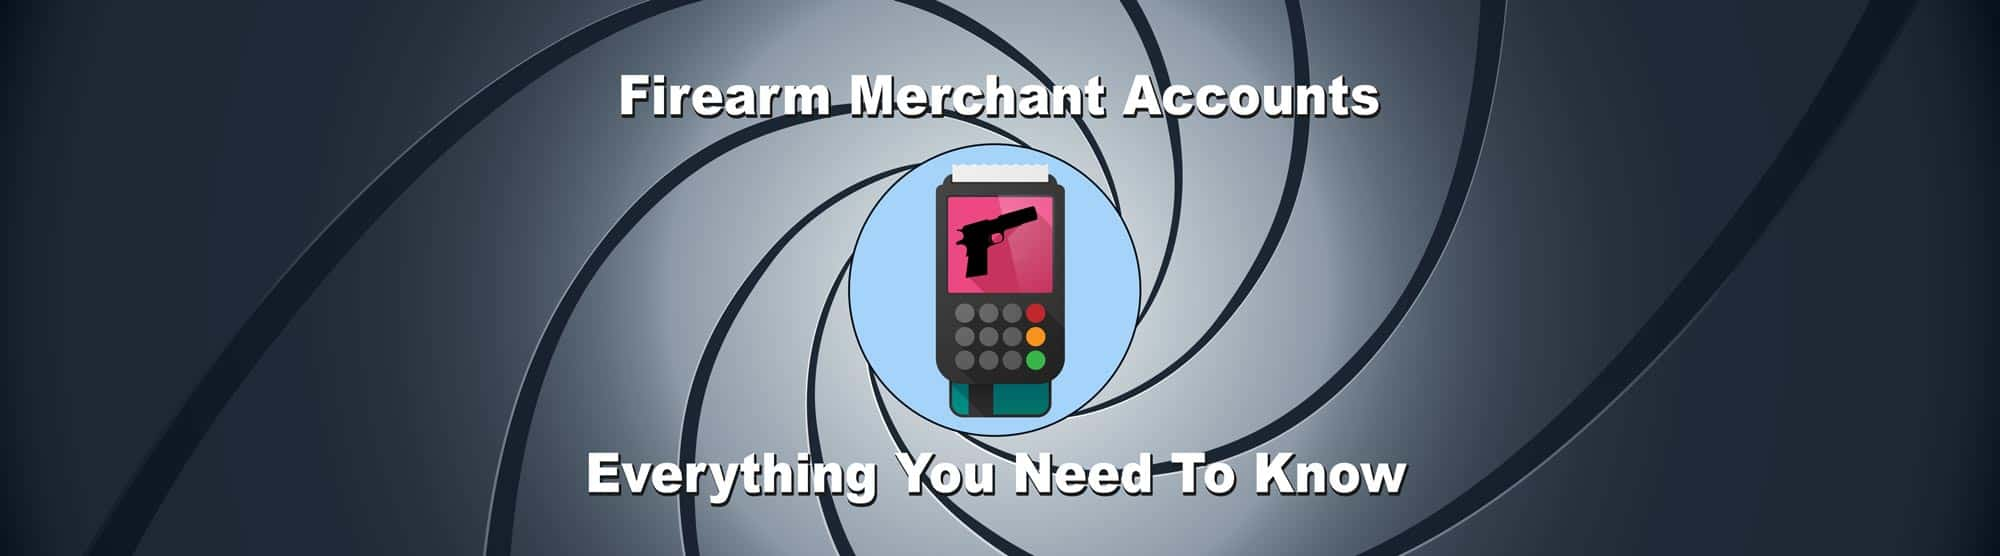 Firearm Merchant Accounts - What you need to know